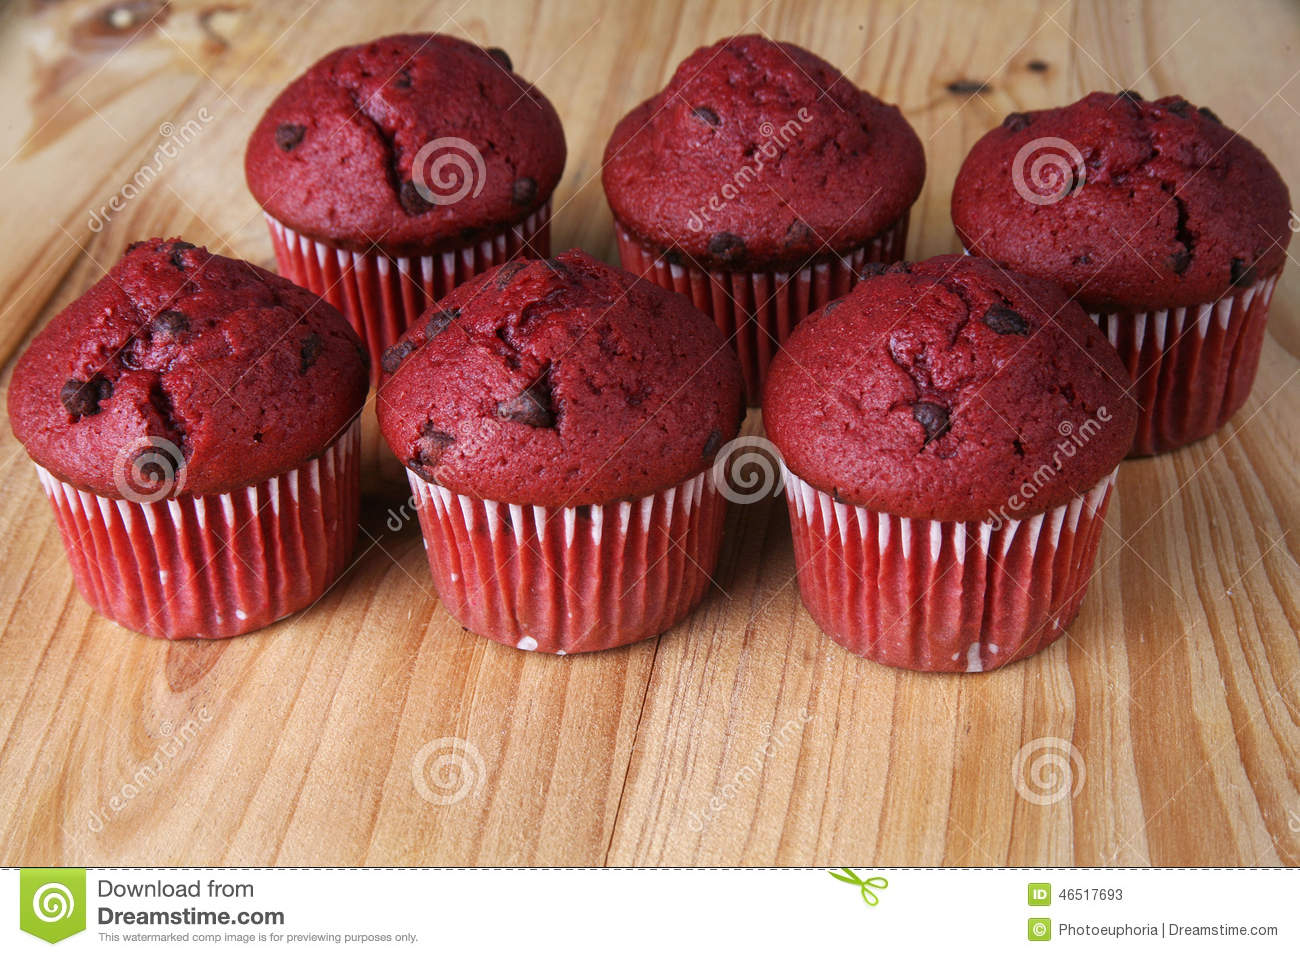 Red Velvet Muffins Stock Photo - Image: 46517693